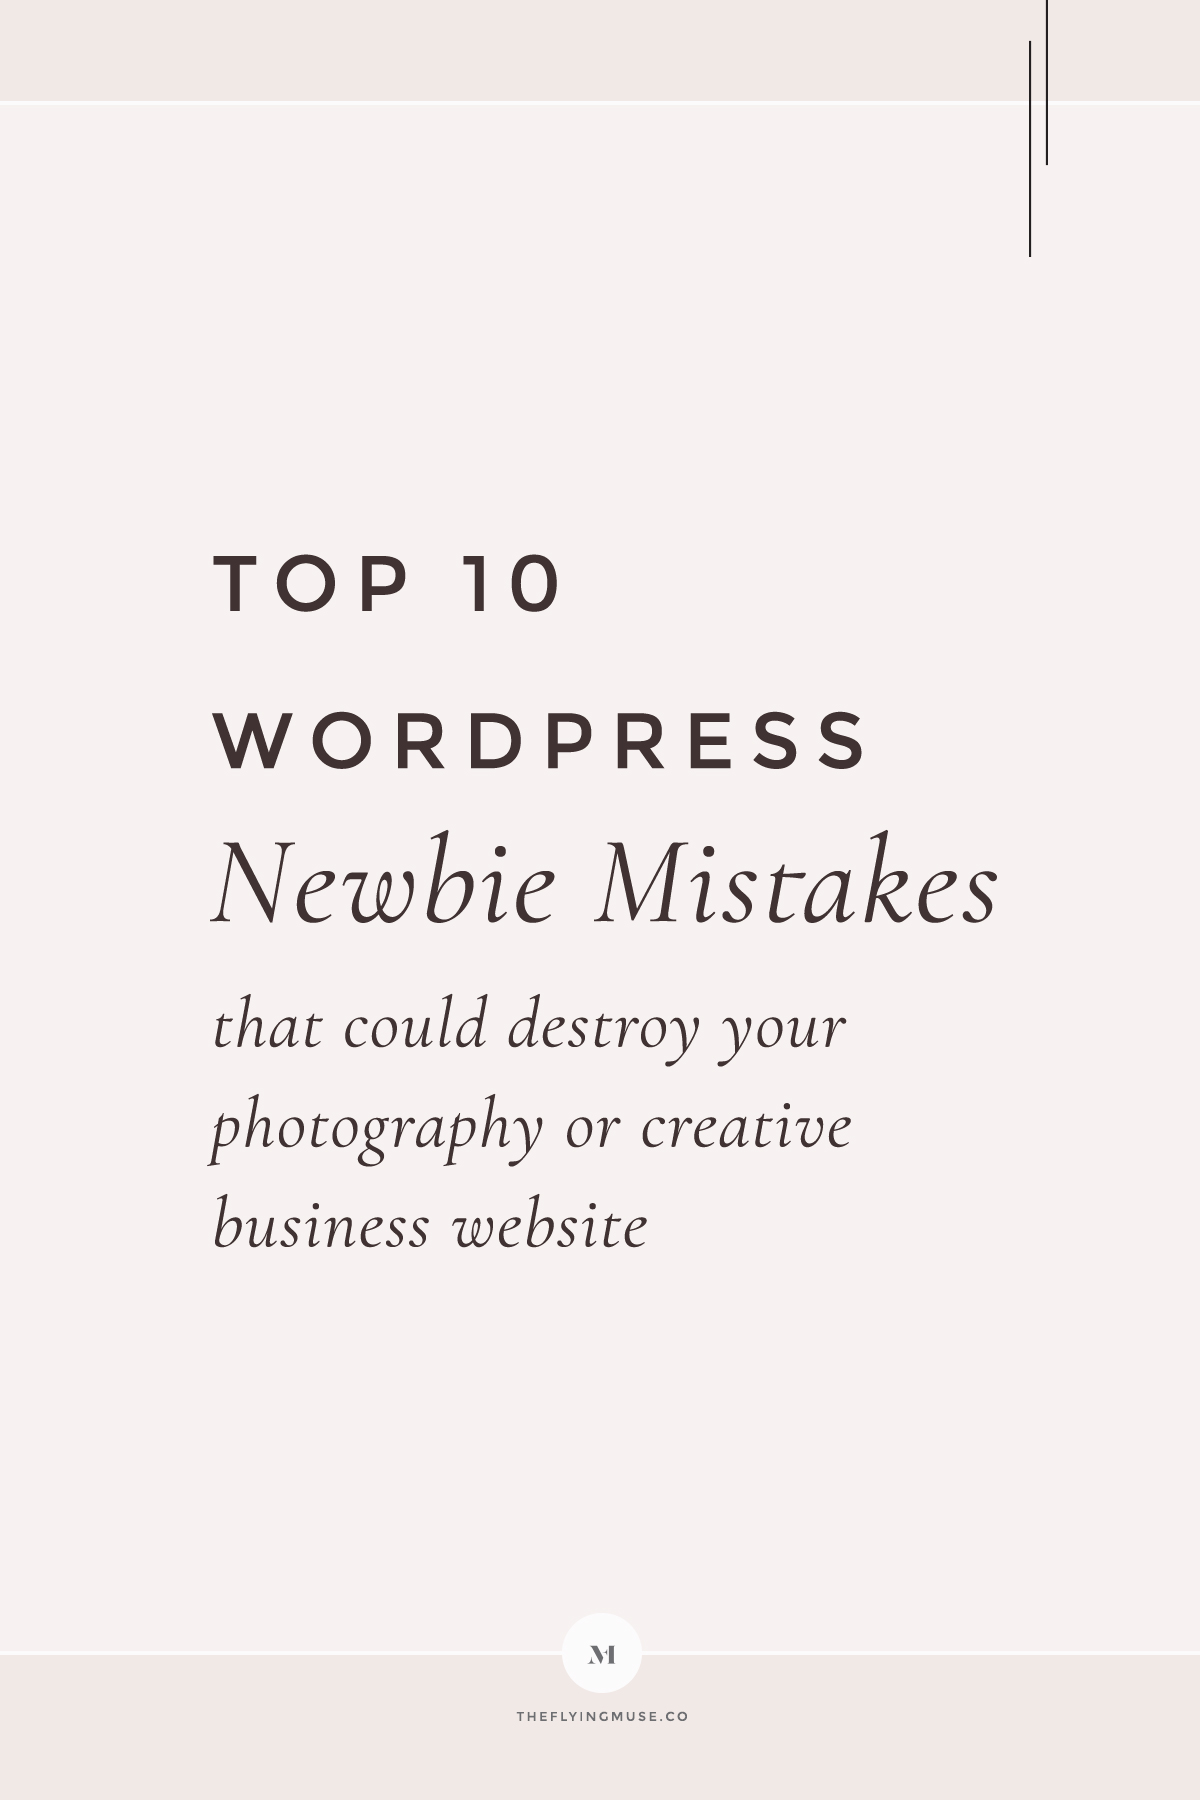 Top WordPress Newbie Mistakes that could destroy your photography or creative business website